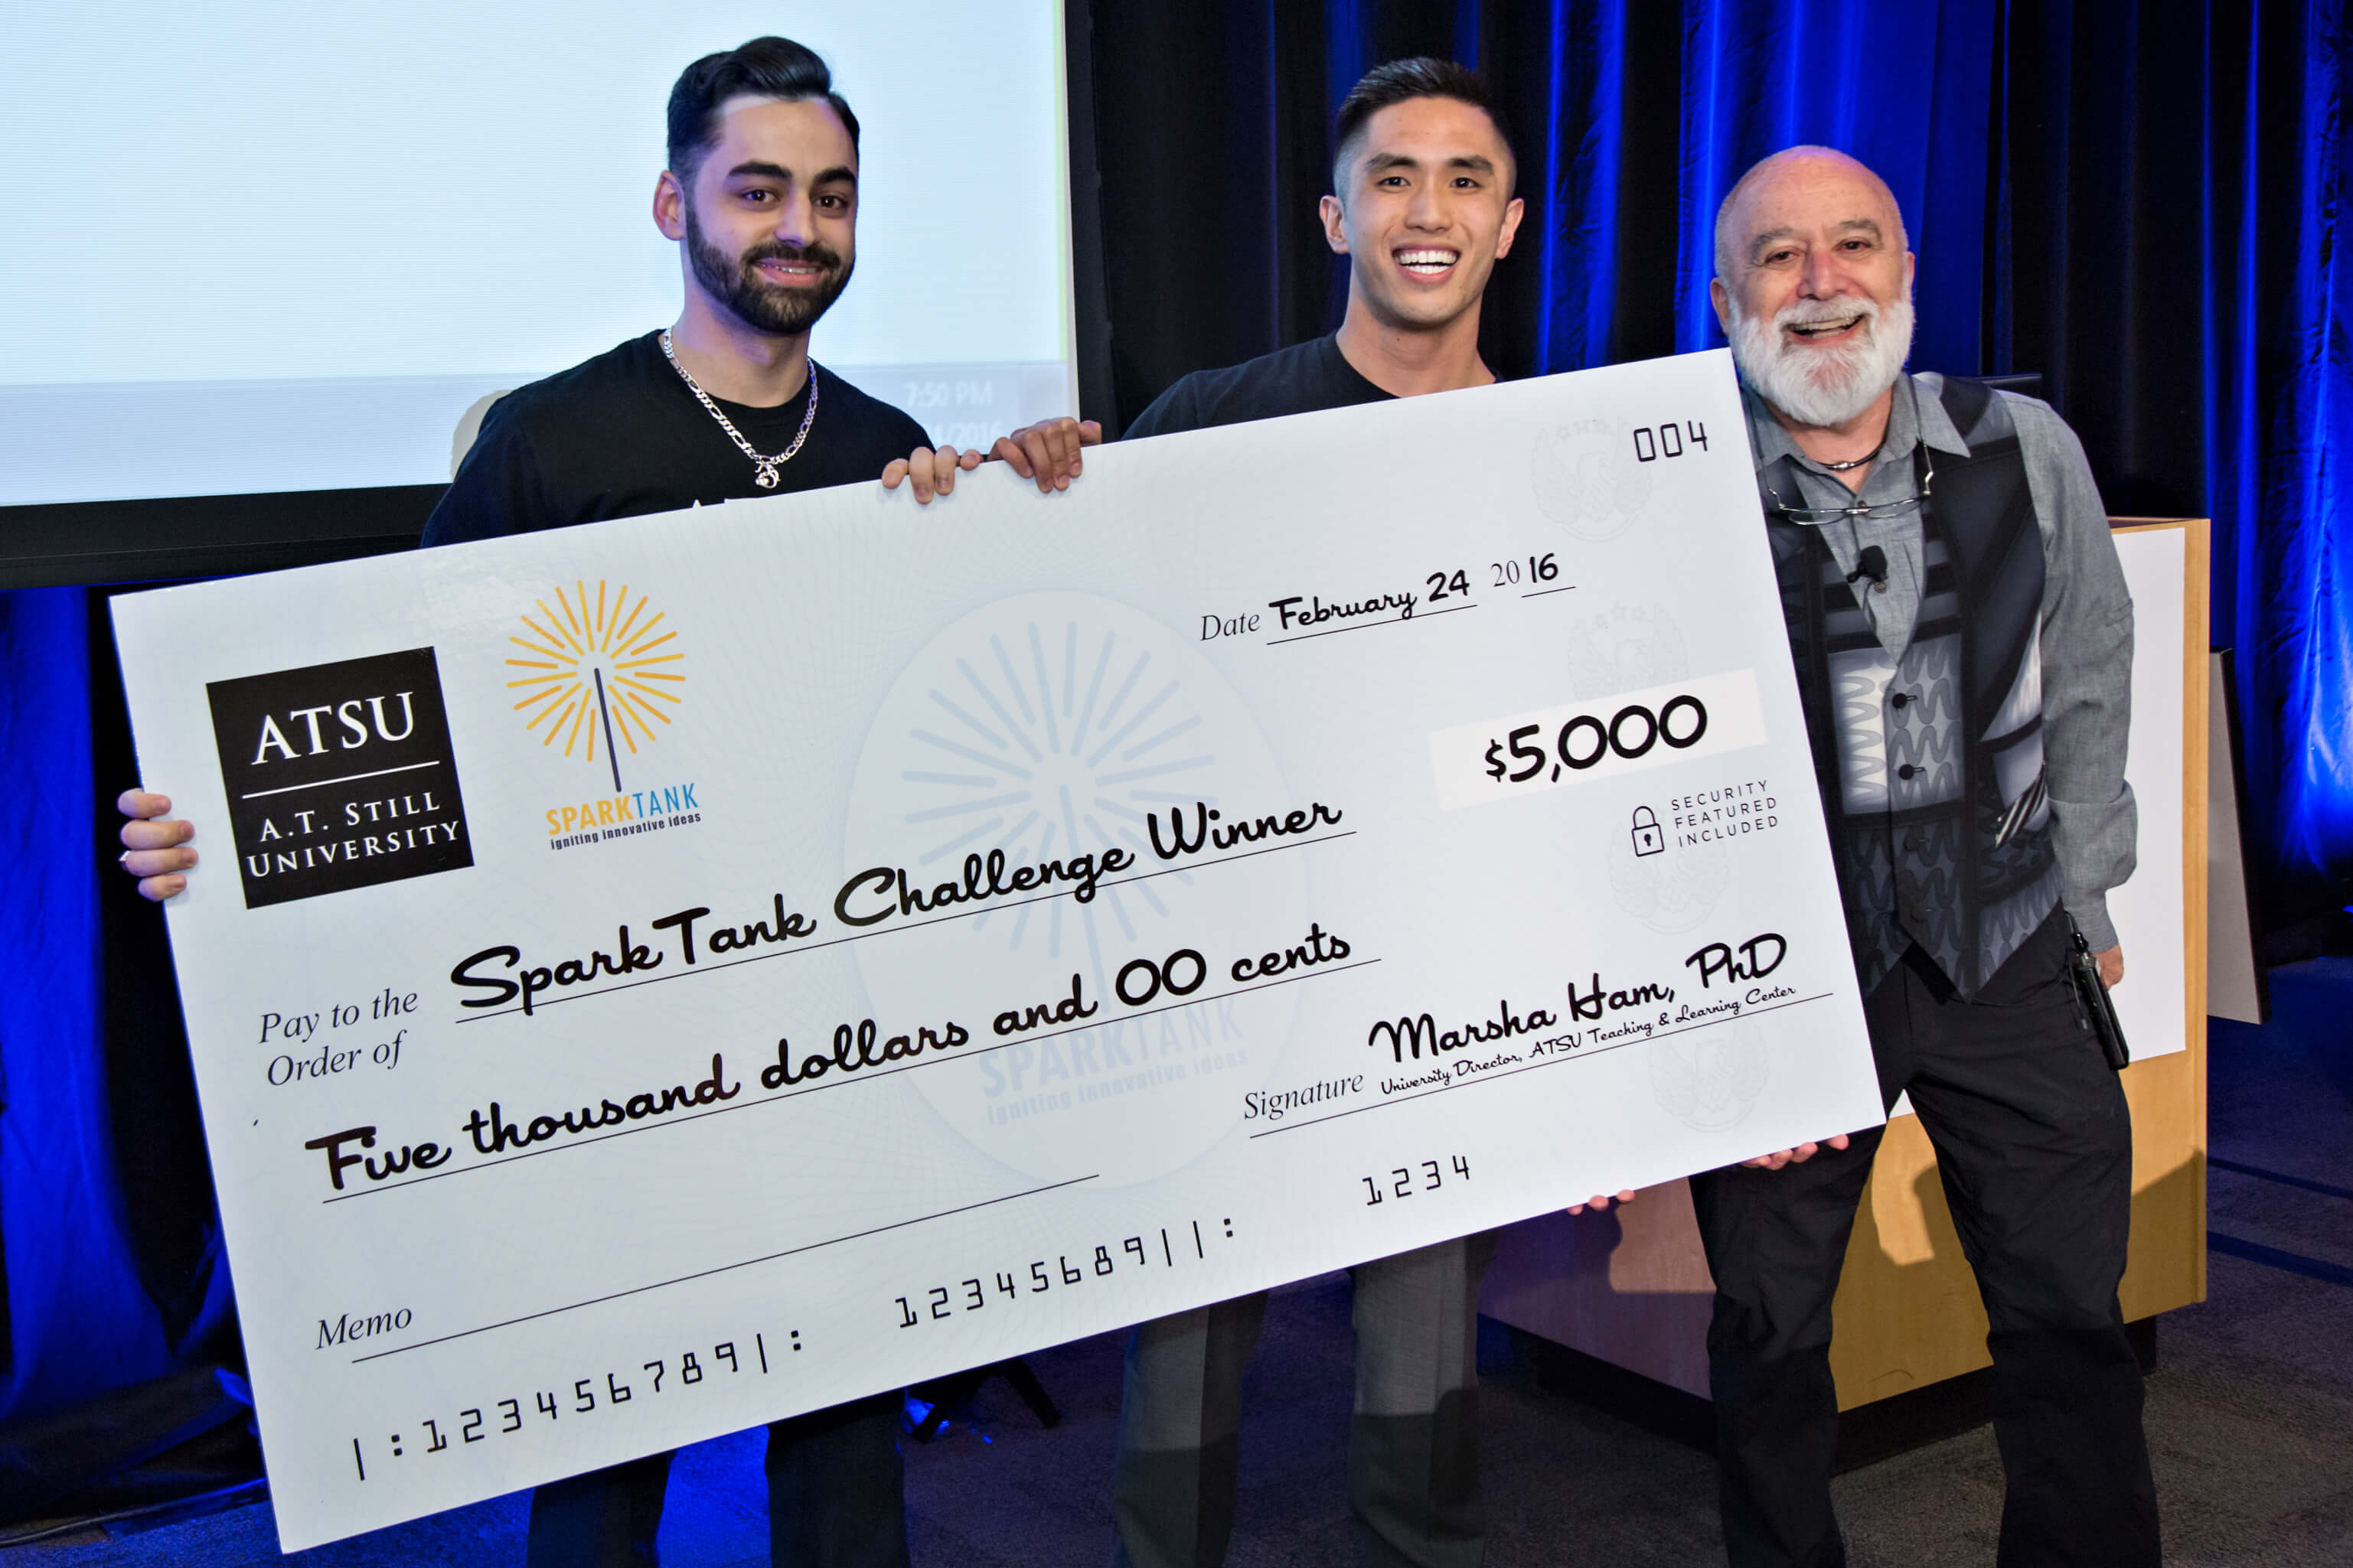 SparkTank inaugural competition